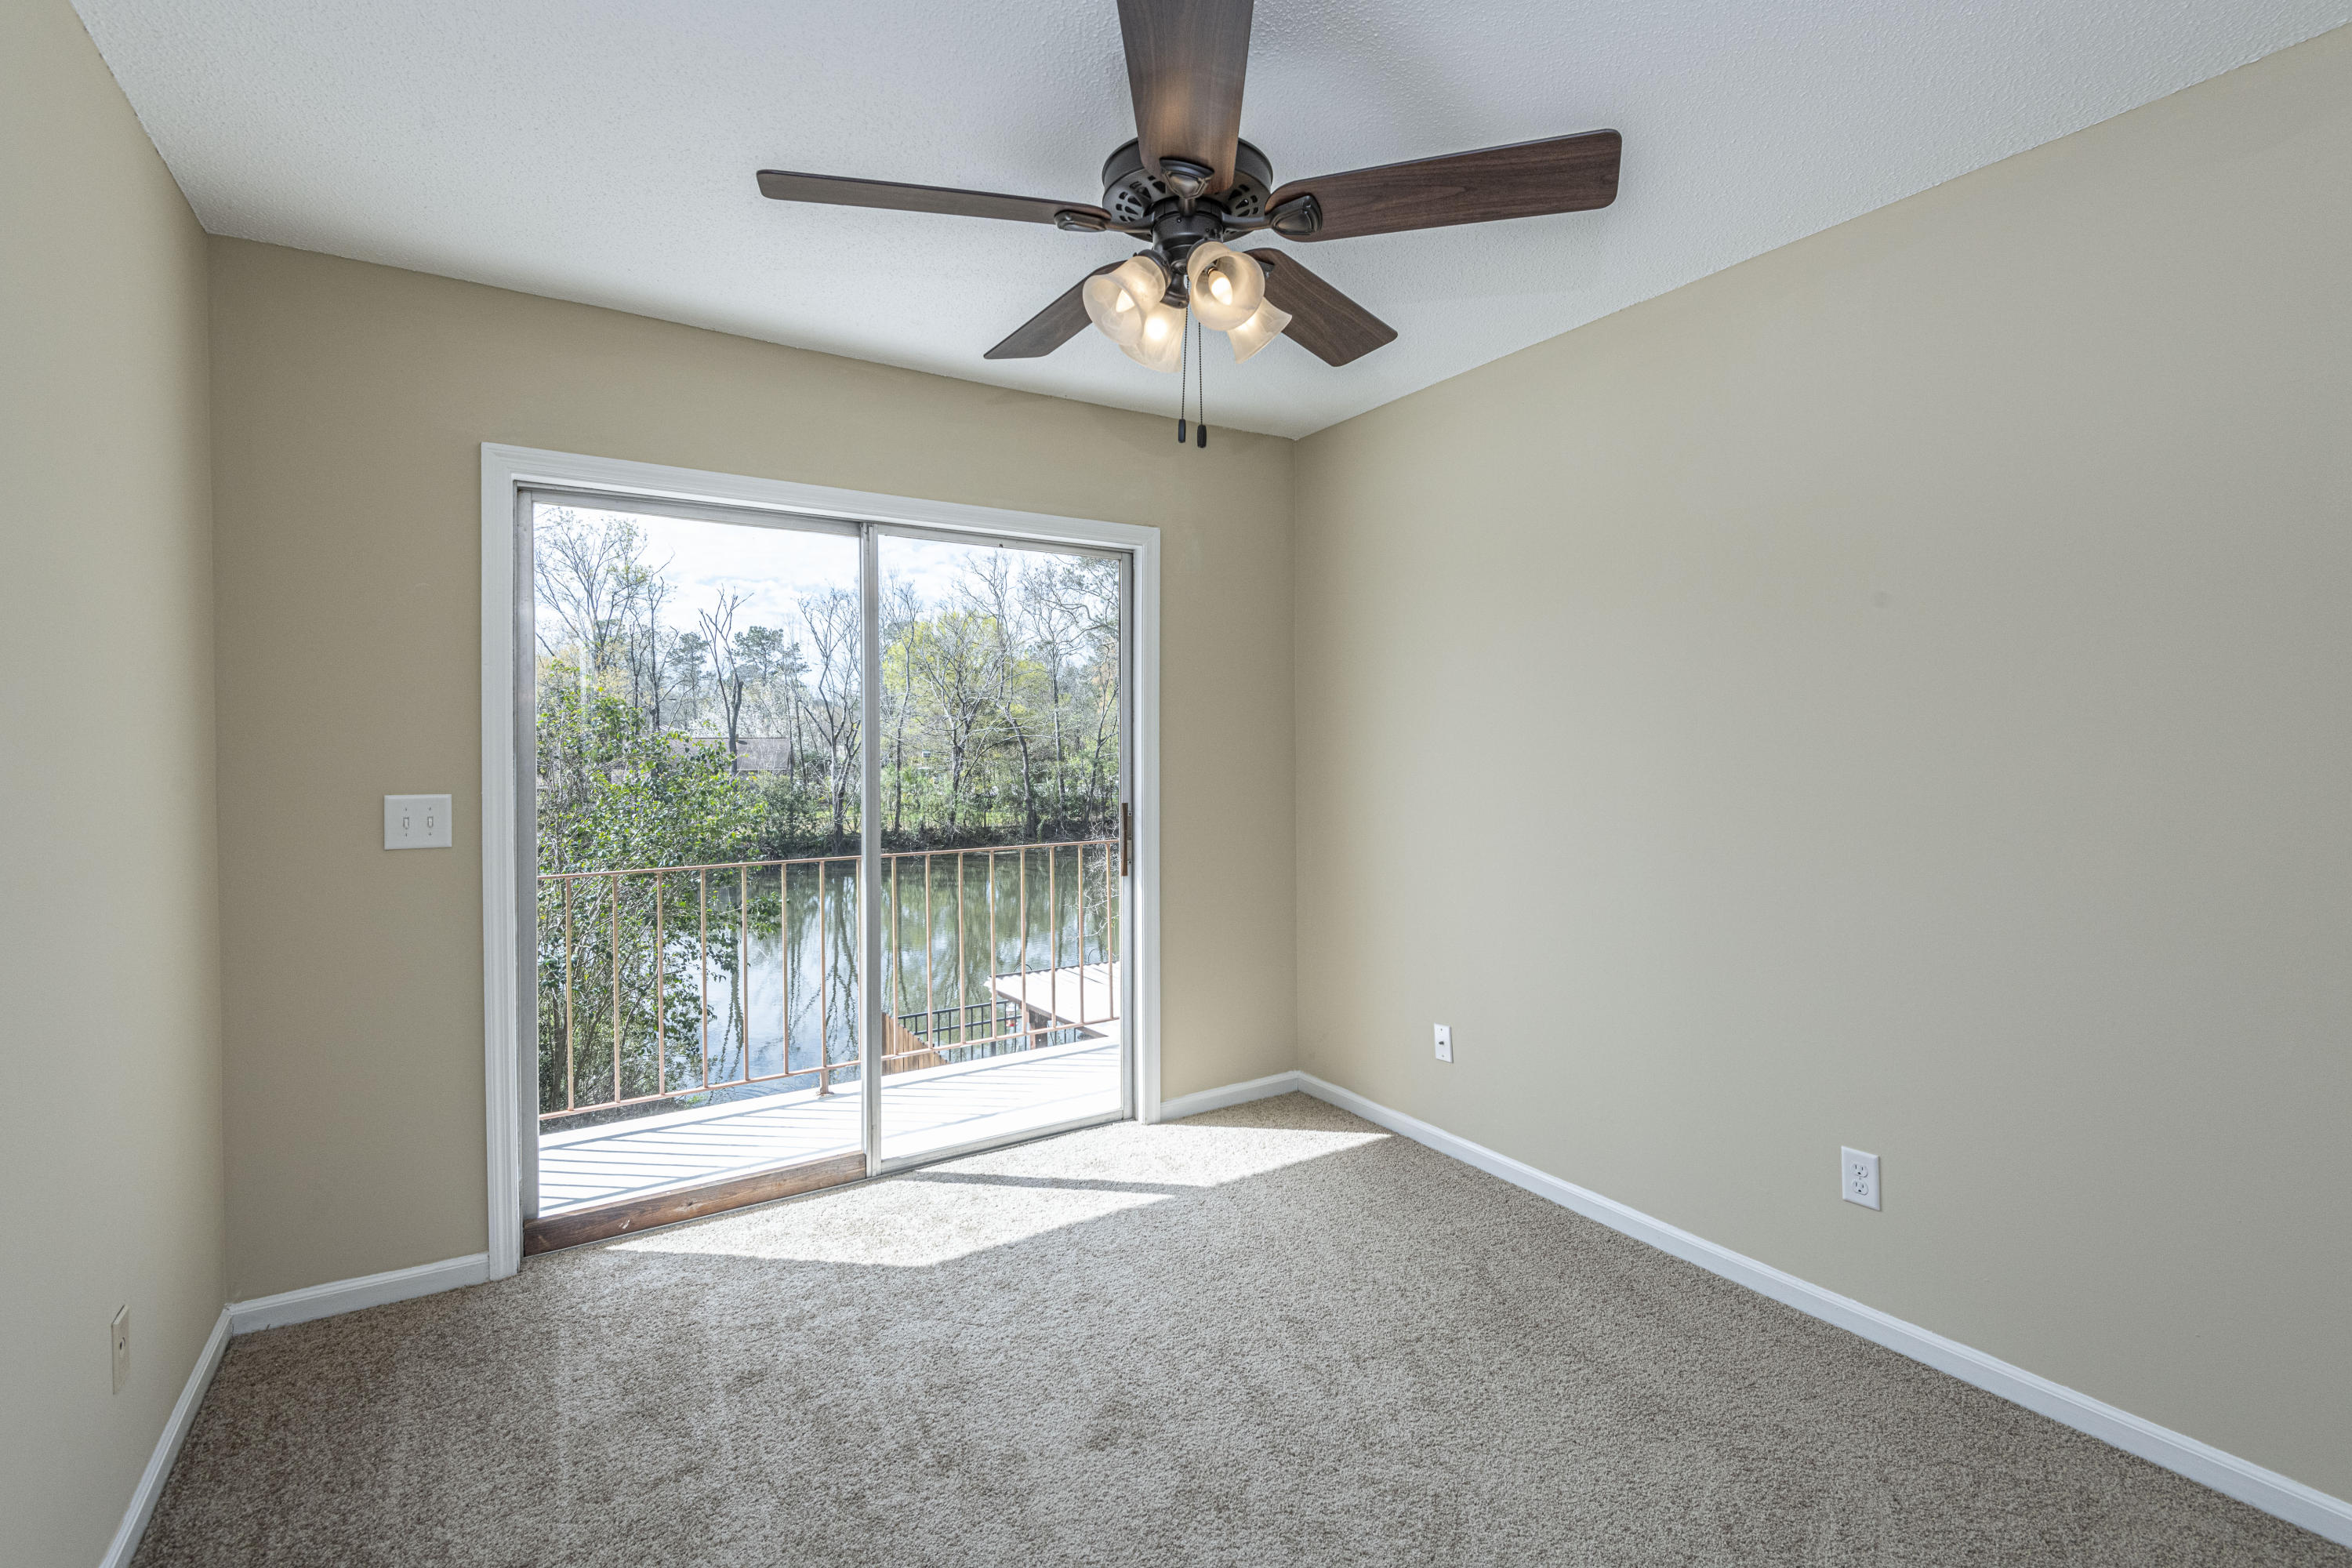 Foxborough Town Houses Homes For Sale - 120 Brush, Goose Creek, SC - 15